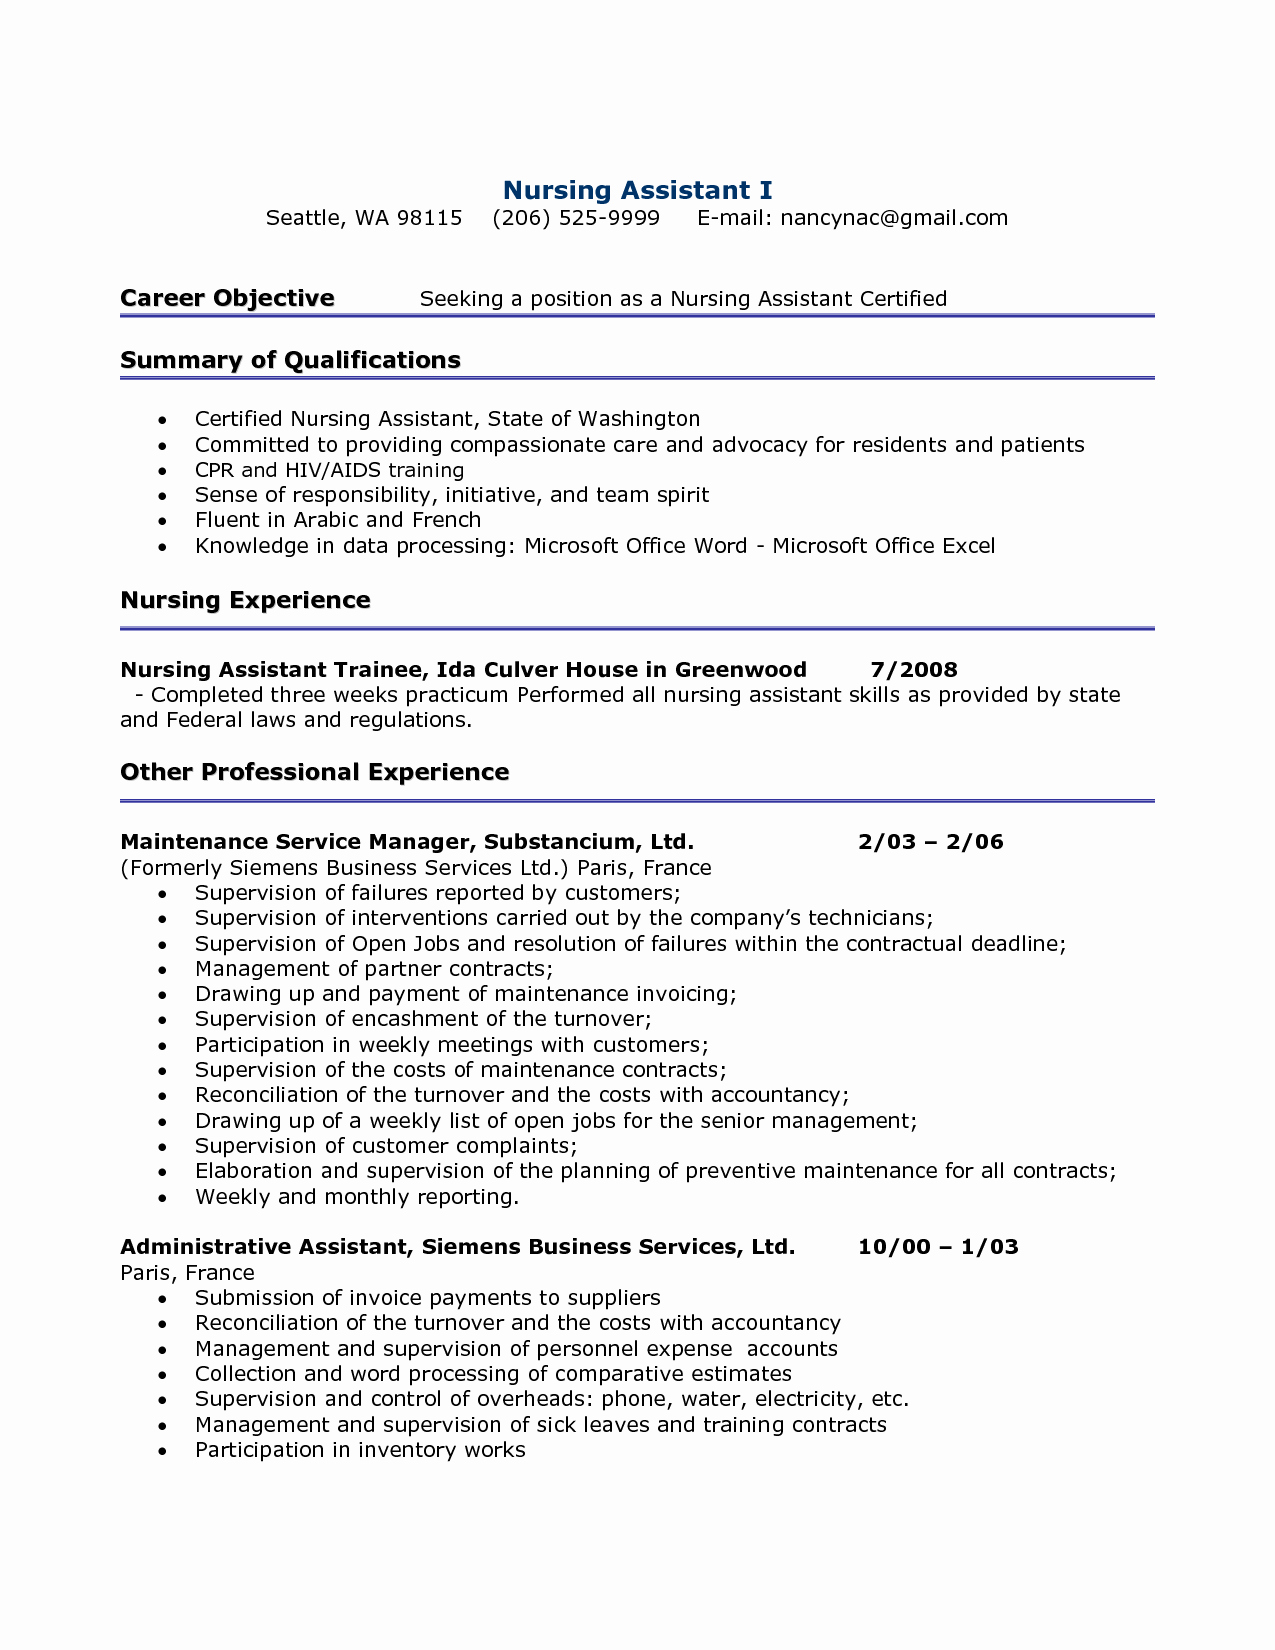 Free Cna Resume Templates Best Of 10 Cna Resume Examples 2016 Samplebusinessresume